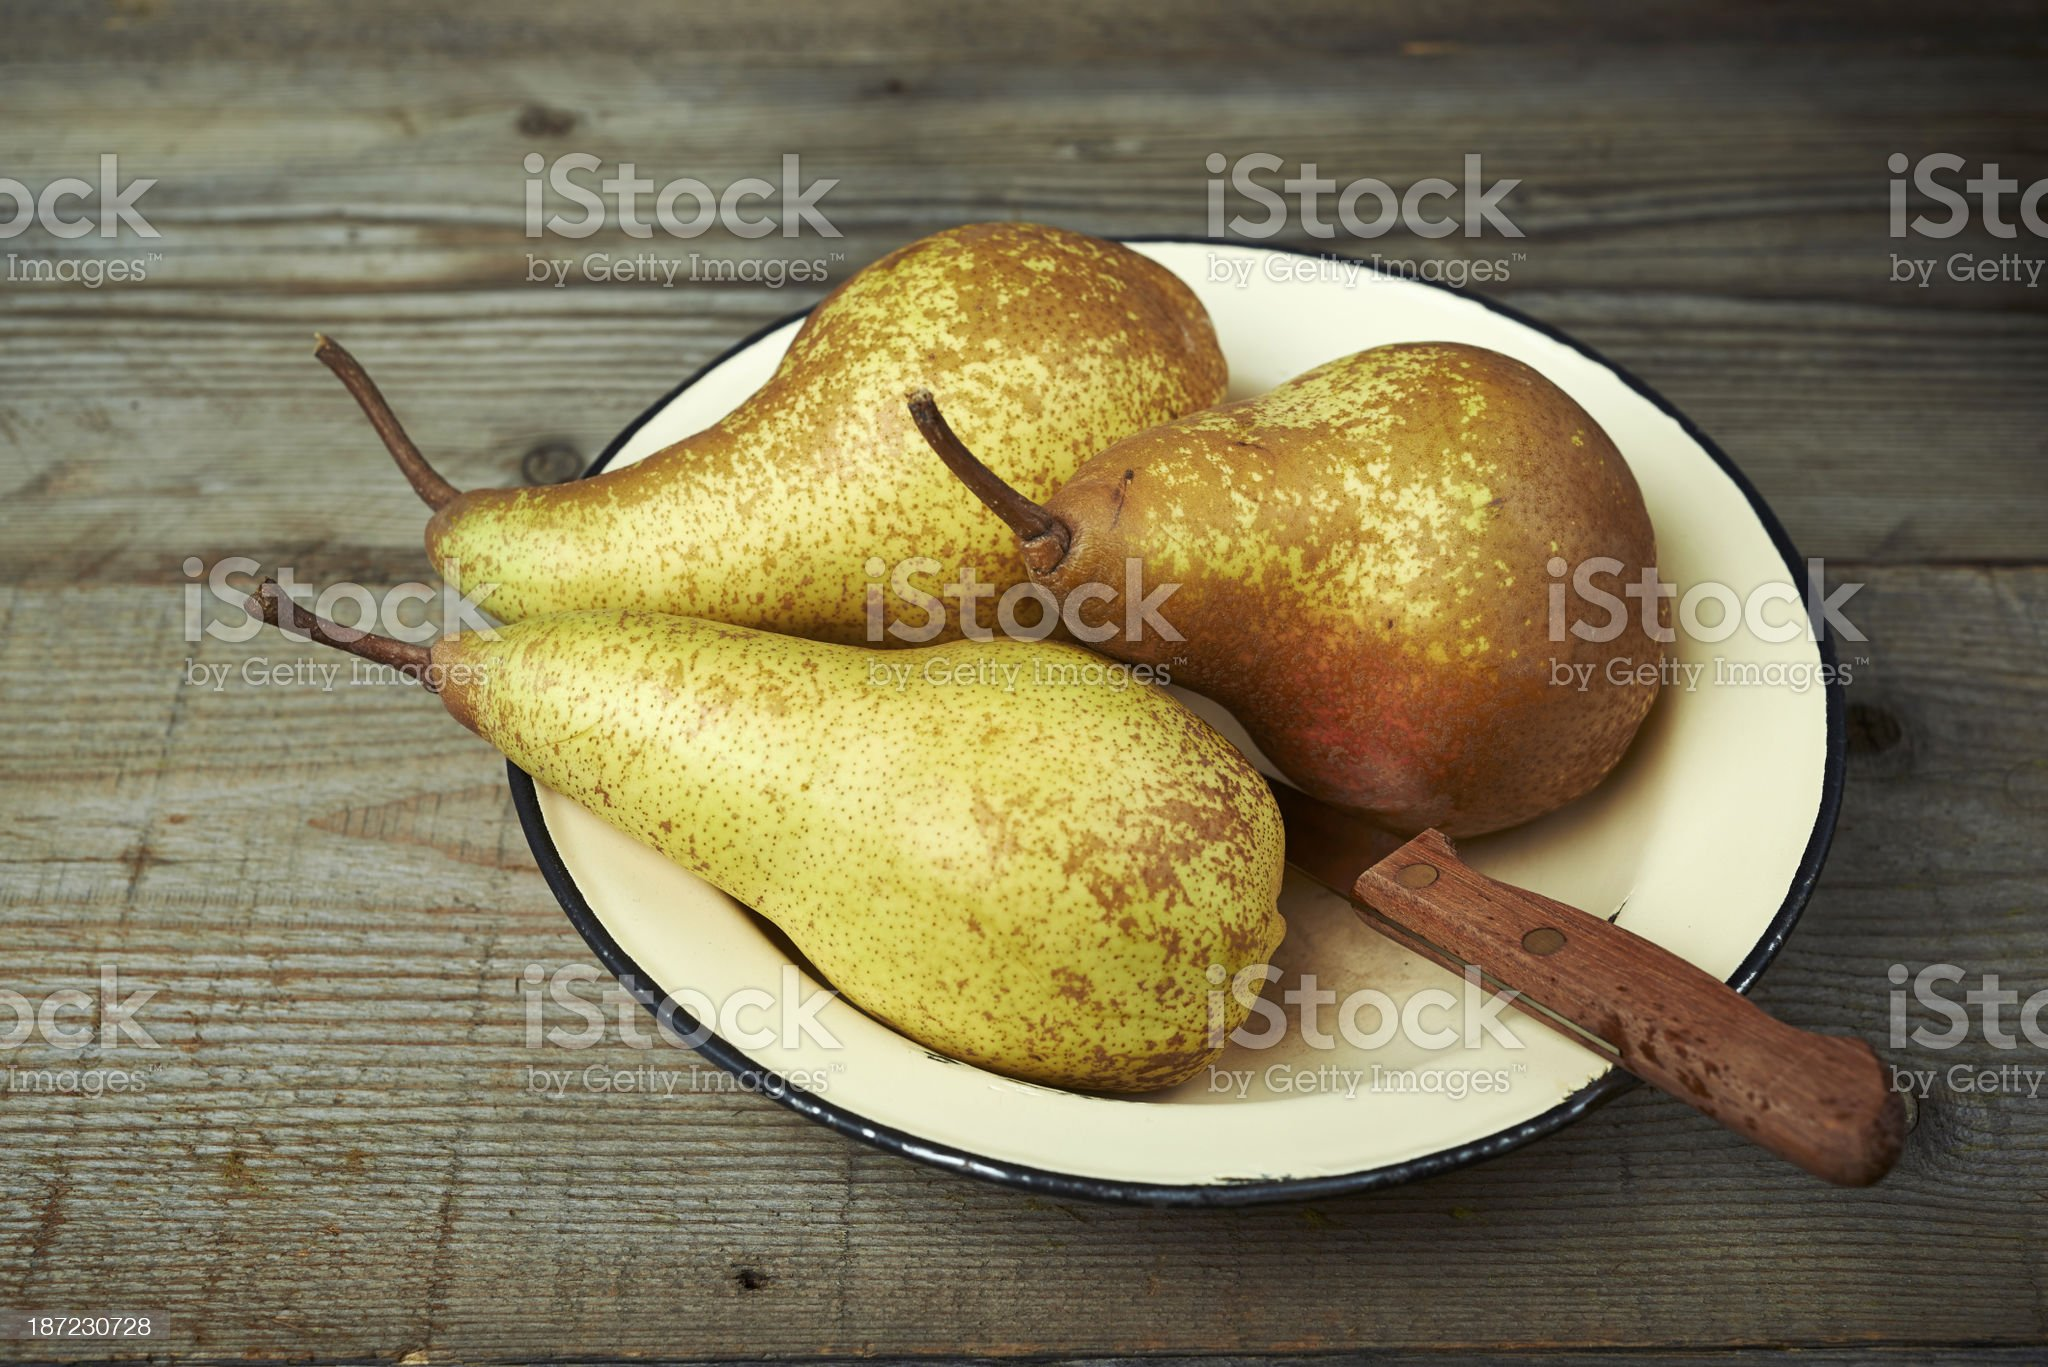 Pears in a plate royalty-free stock photo